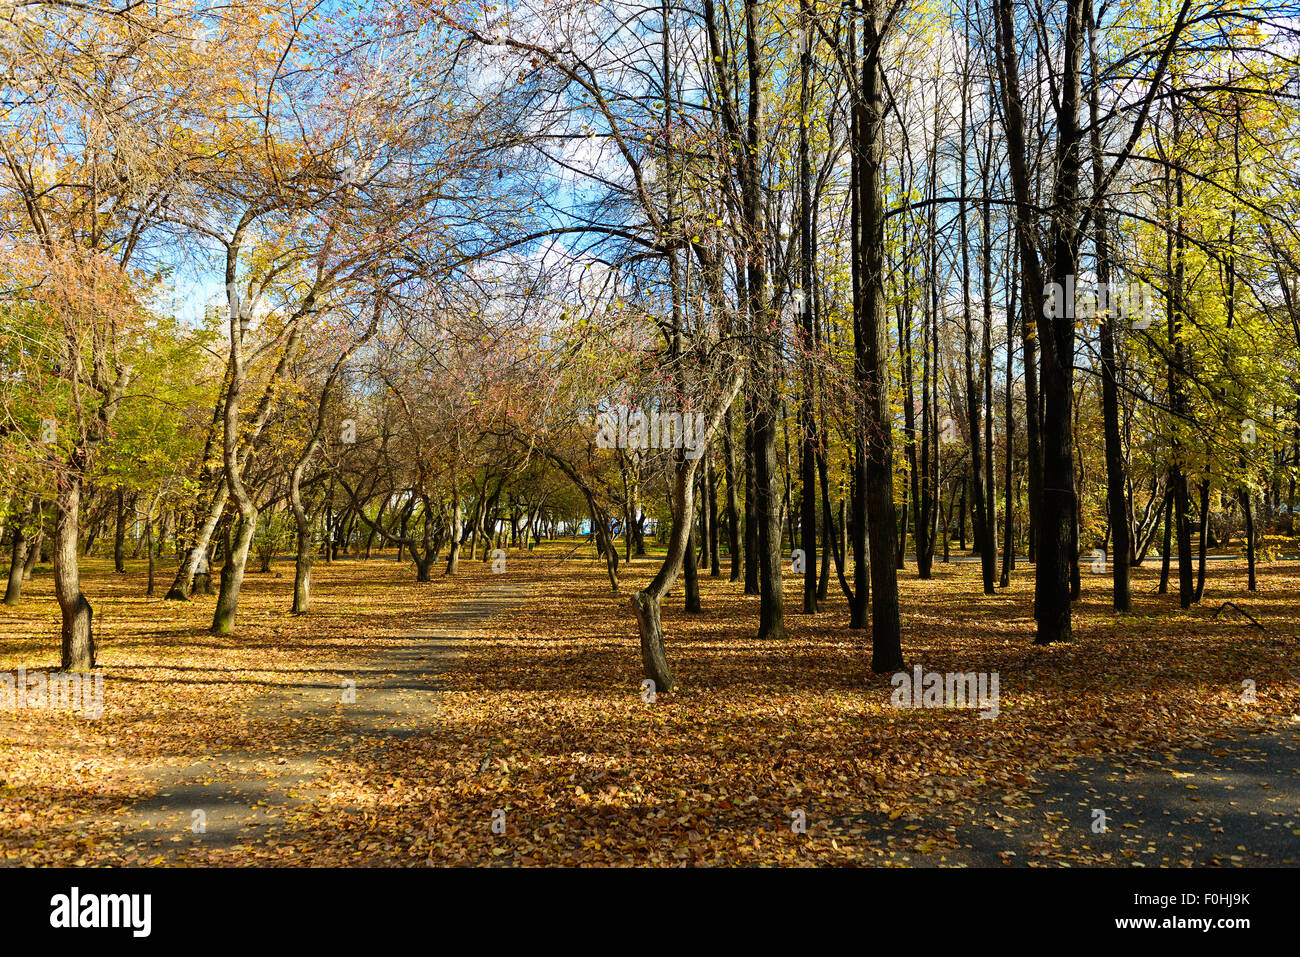 Fall autumn trees  in park - Stock Image